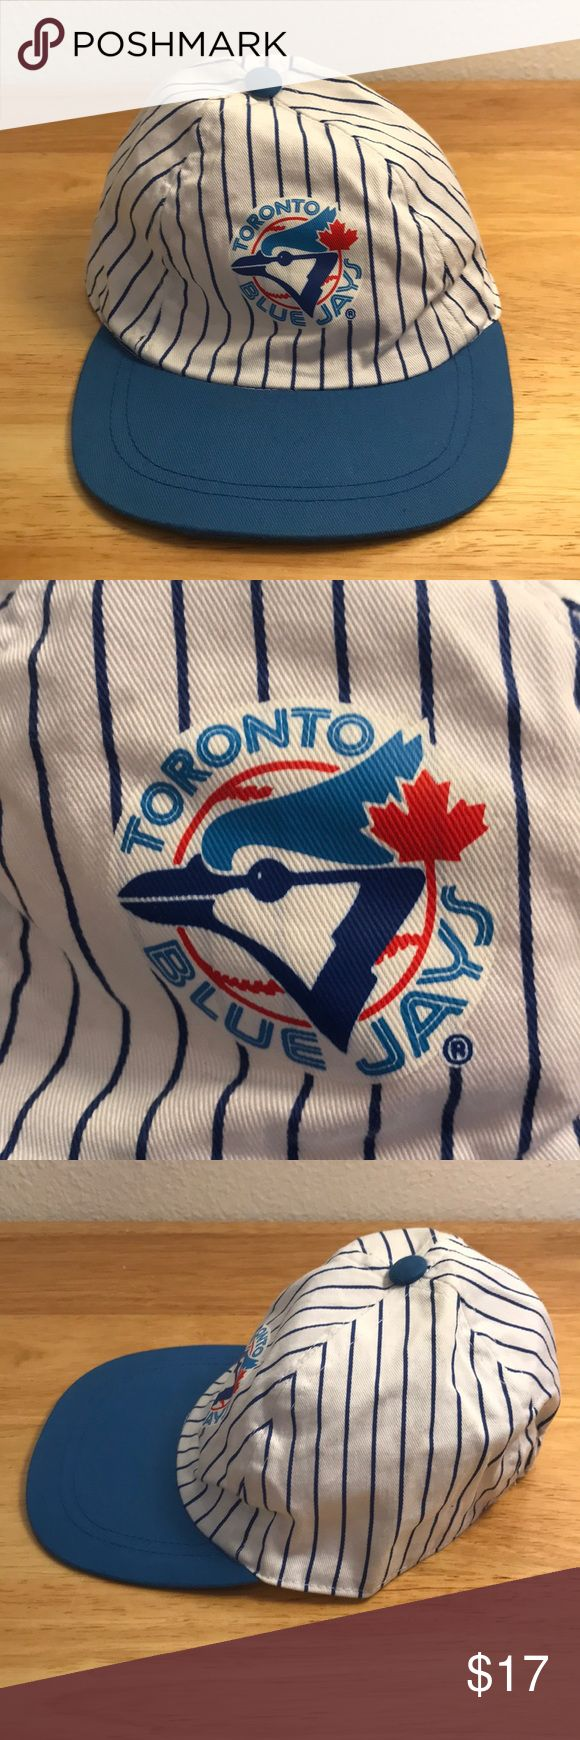 Kids Toronto Blue Jays Hat Kids Toronto Blue Jays Hat, Brand New, Never Worn or Used, 🎄WILL SHIP IN ONE DAY🎄All bundles of 2 or more receive 20% off. Closet full of new, used and vintage Vans, Skate and surf companies, jewelry, phone cases, shoes and more. MLB Accessories Hats